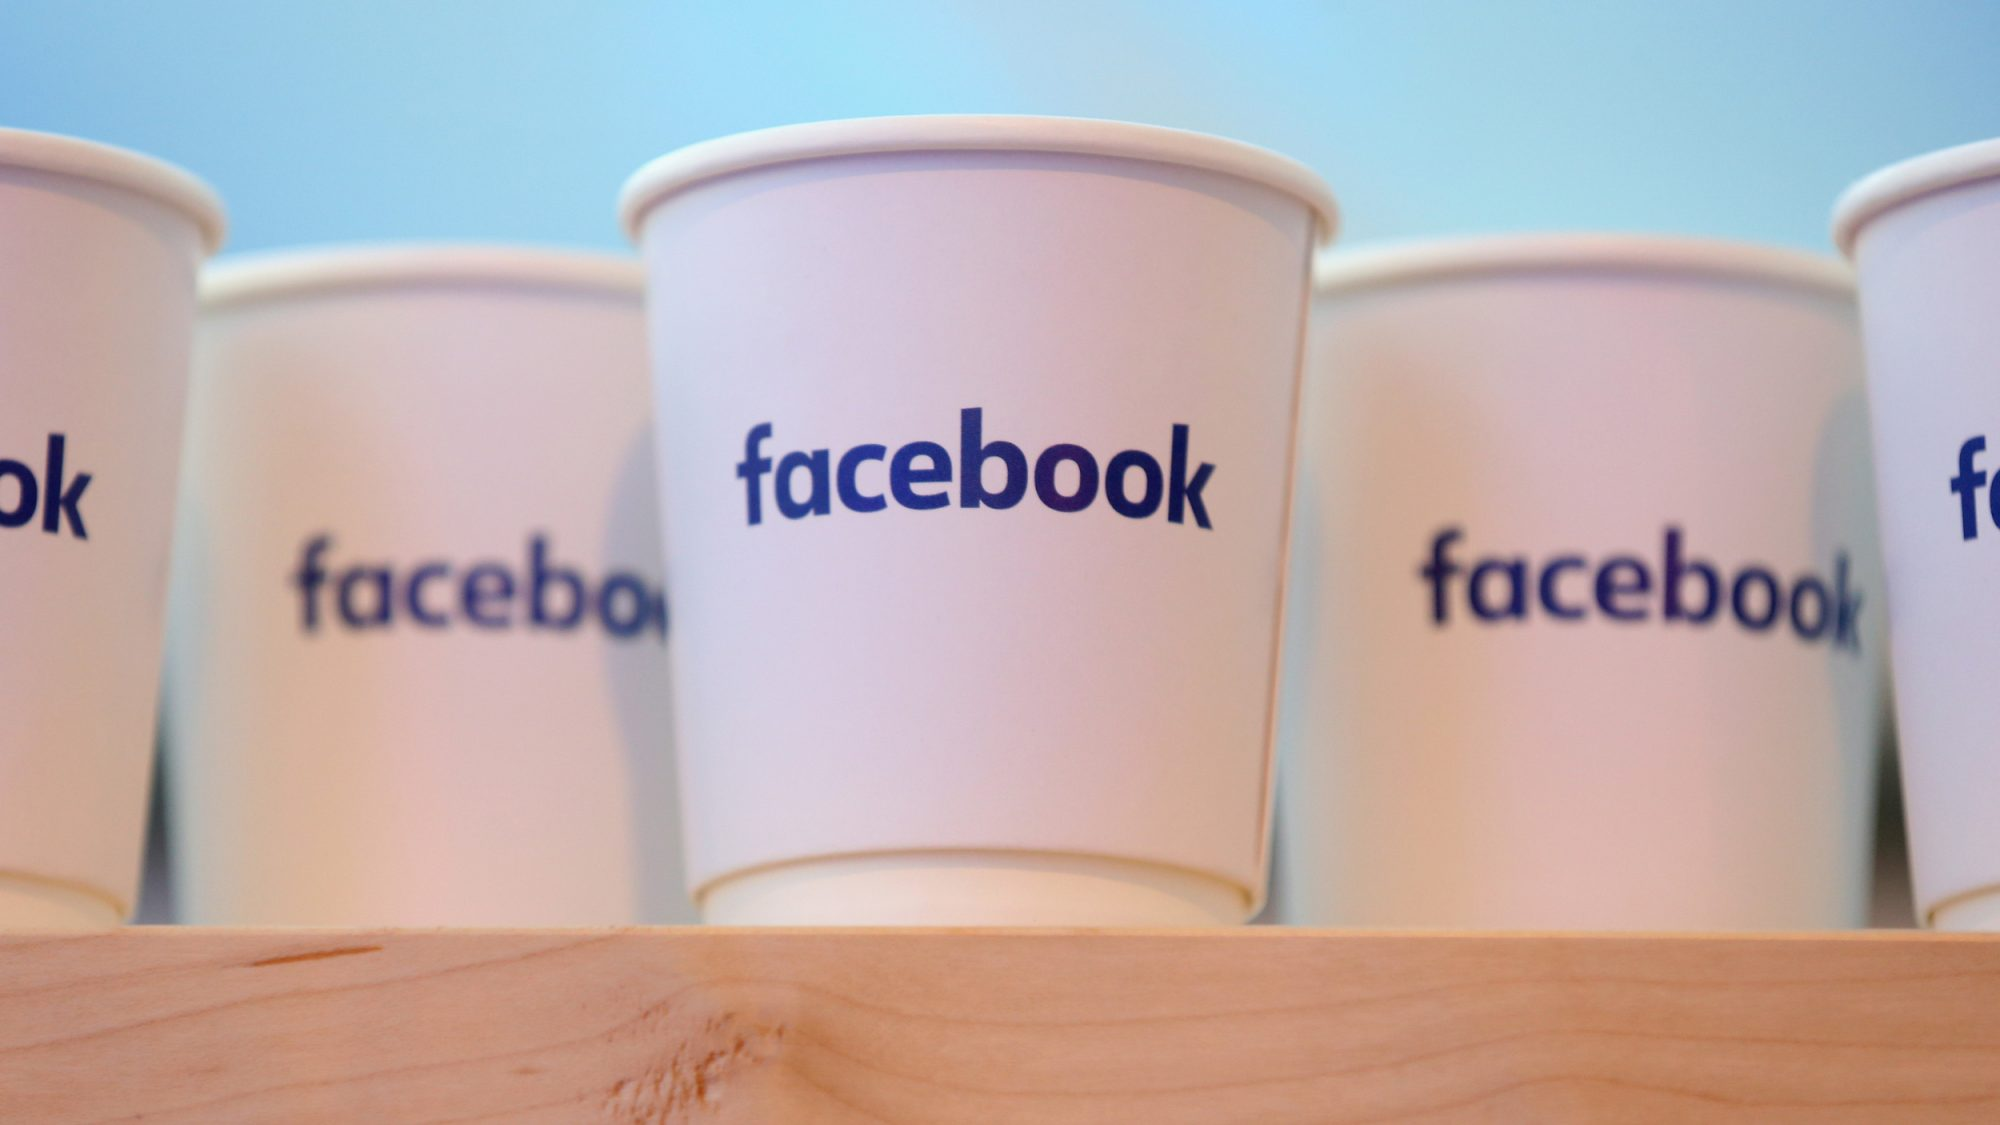 Facebook Users Can Now Order Food Through Pages